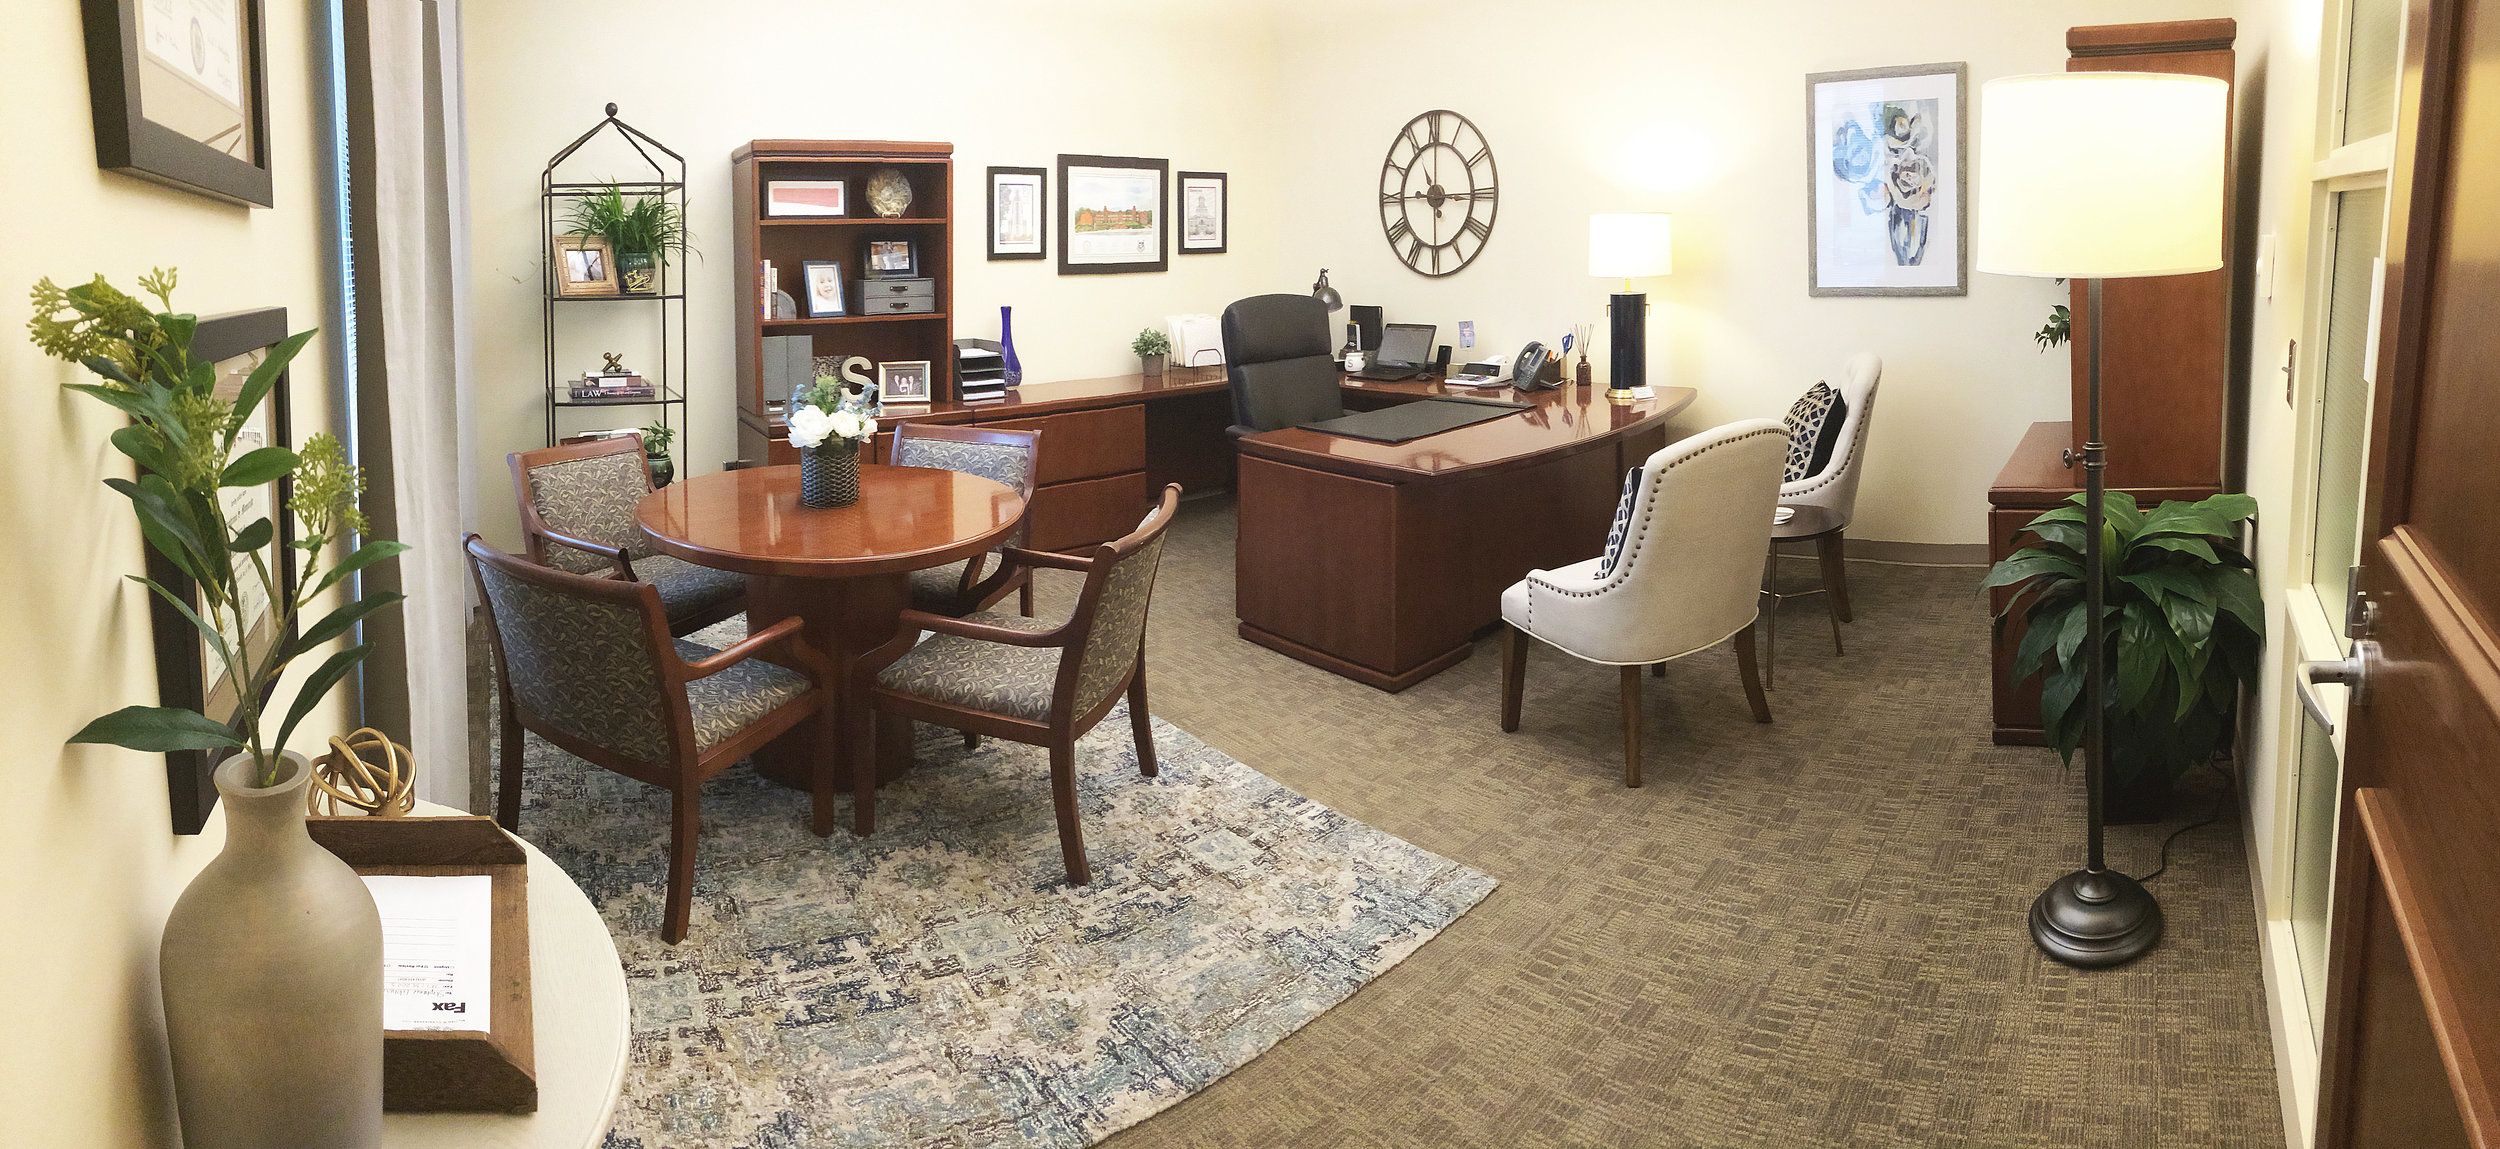 Welcoming-Workspace-7054.jpg